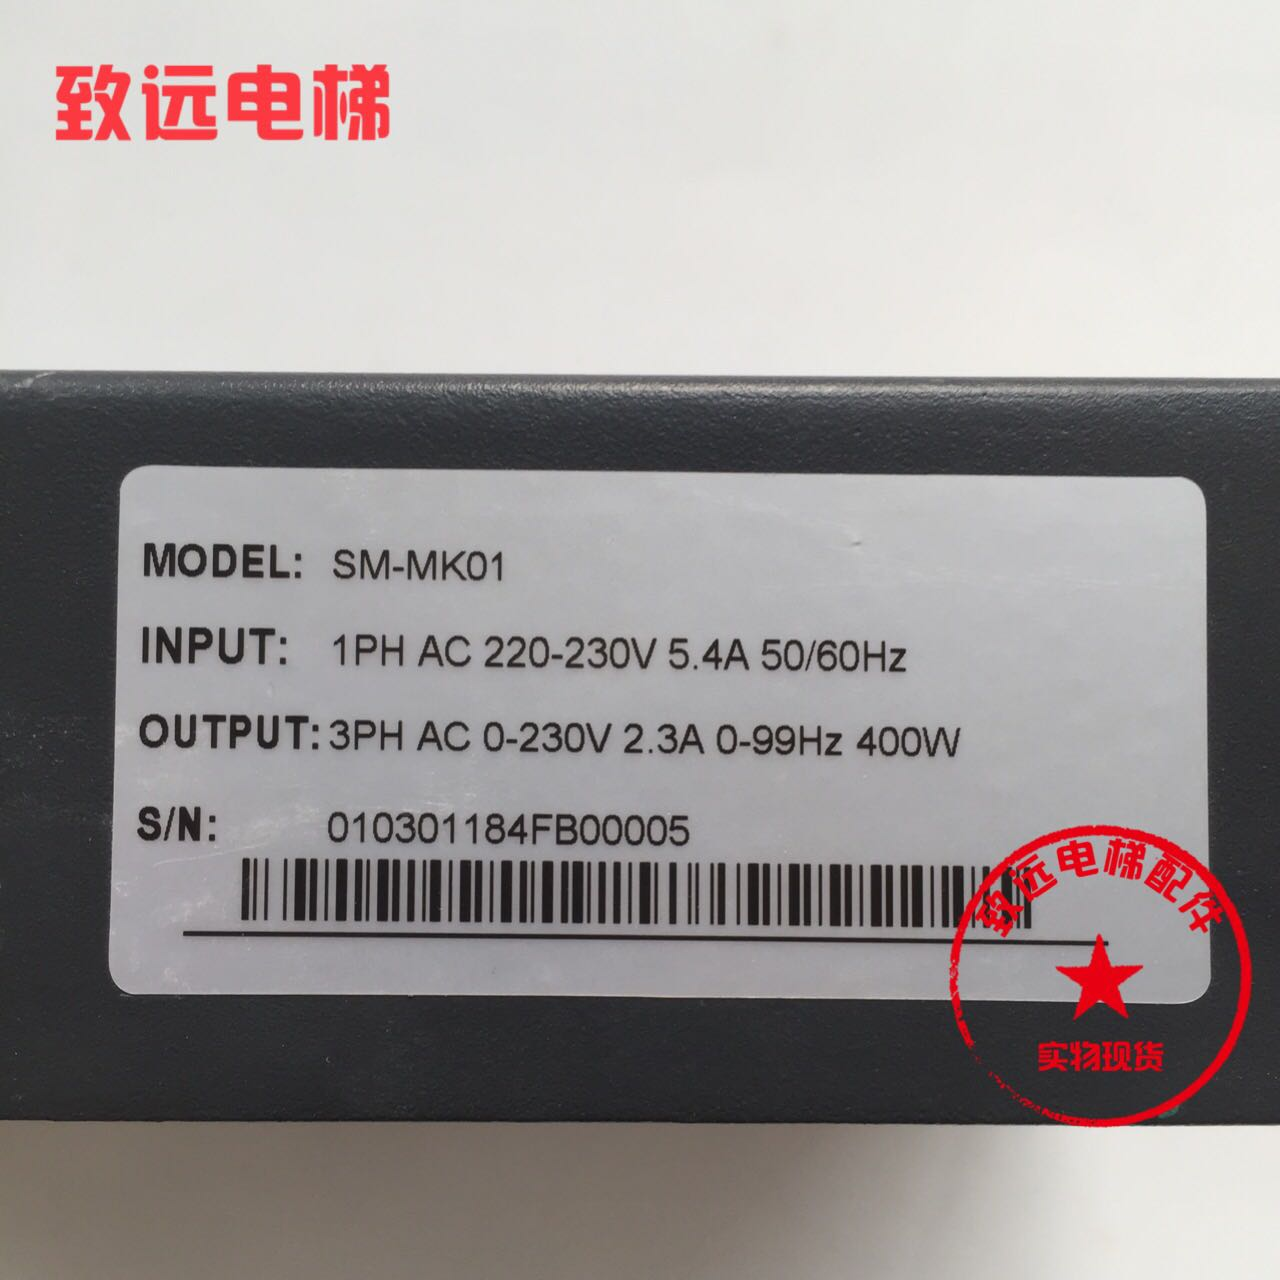 Elevator door machine accessories / SIEMENS inverter /SM-MK01/ original spot quality assurance